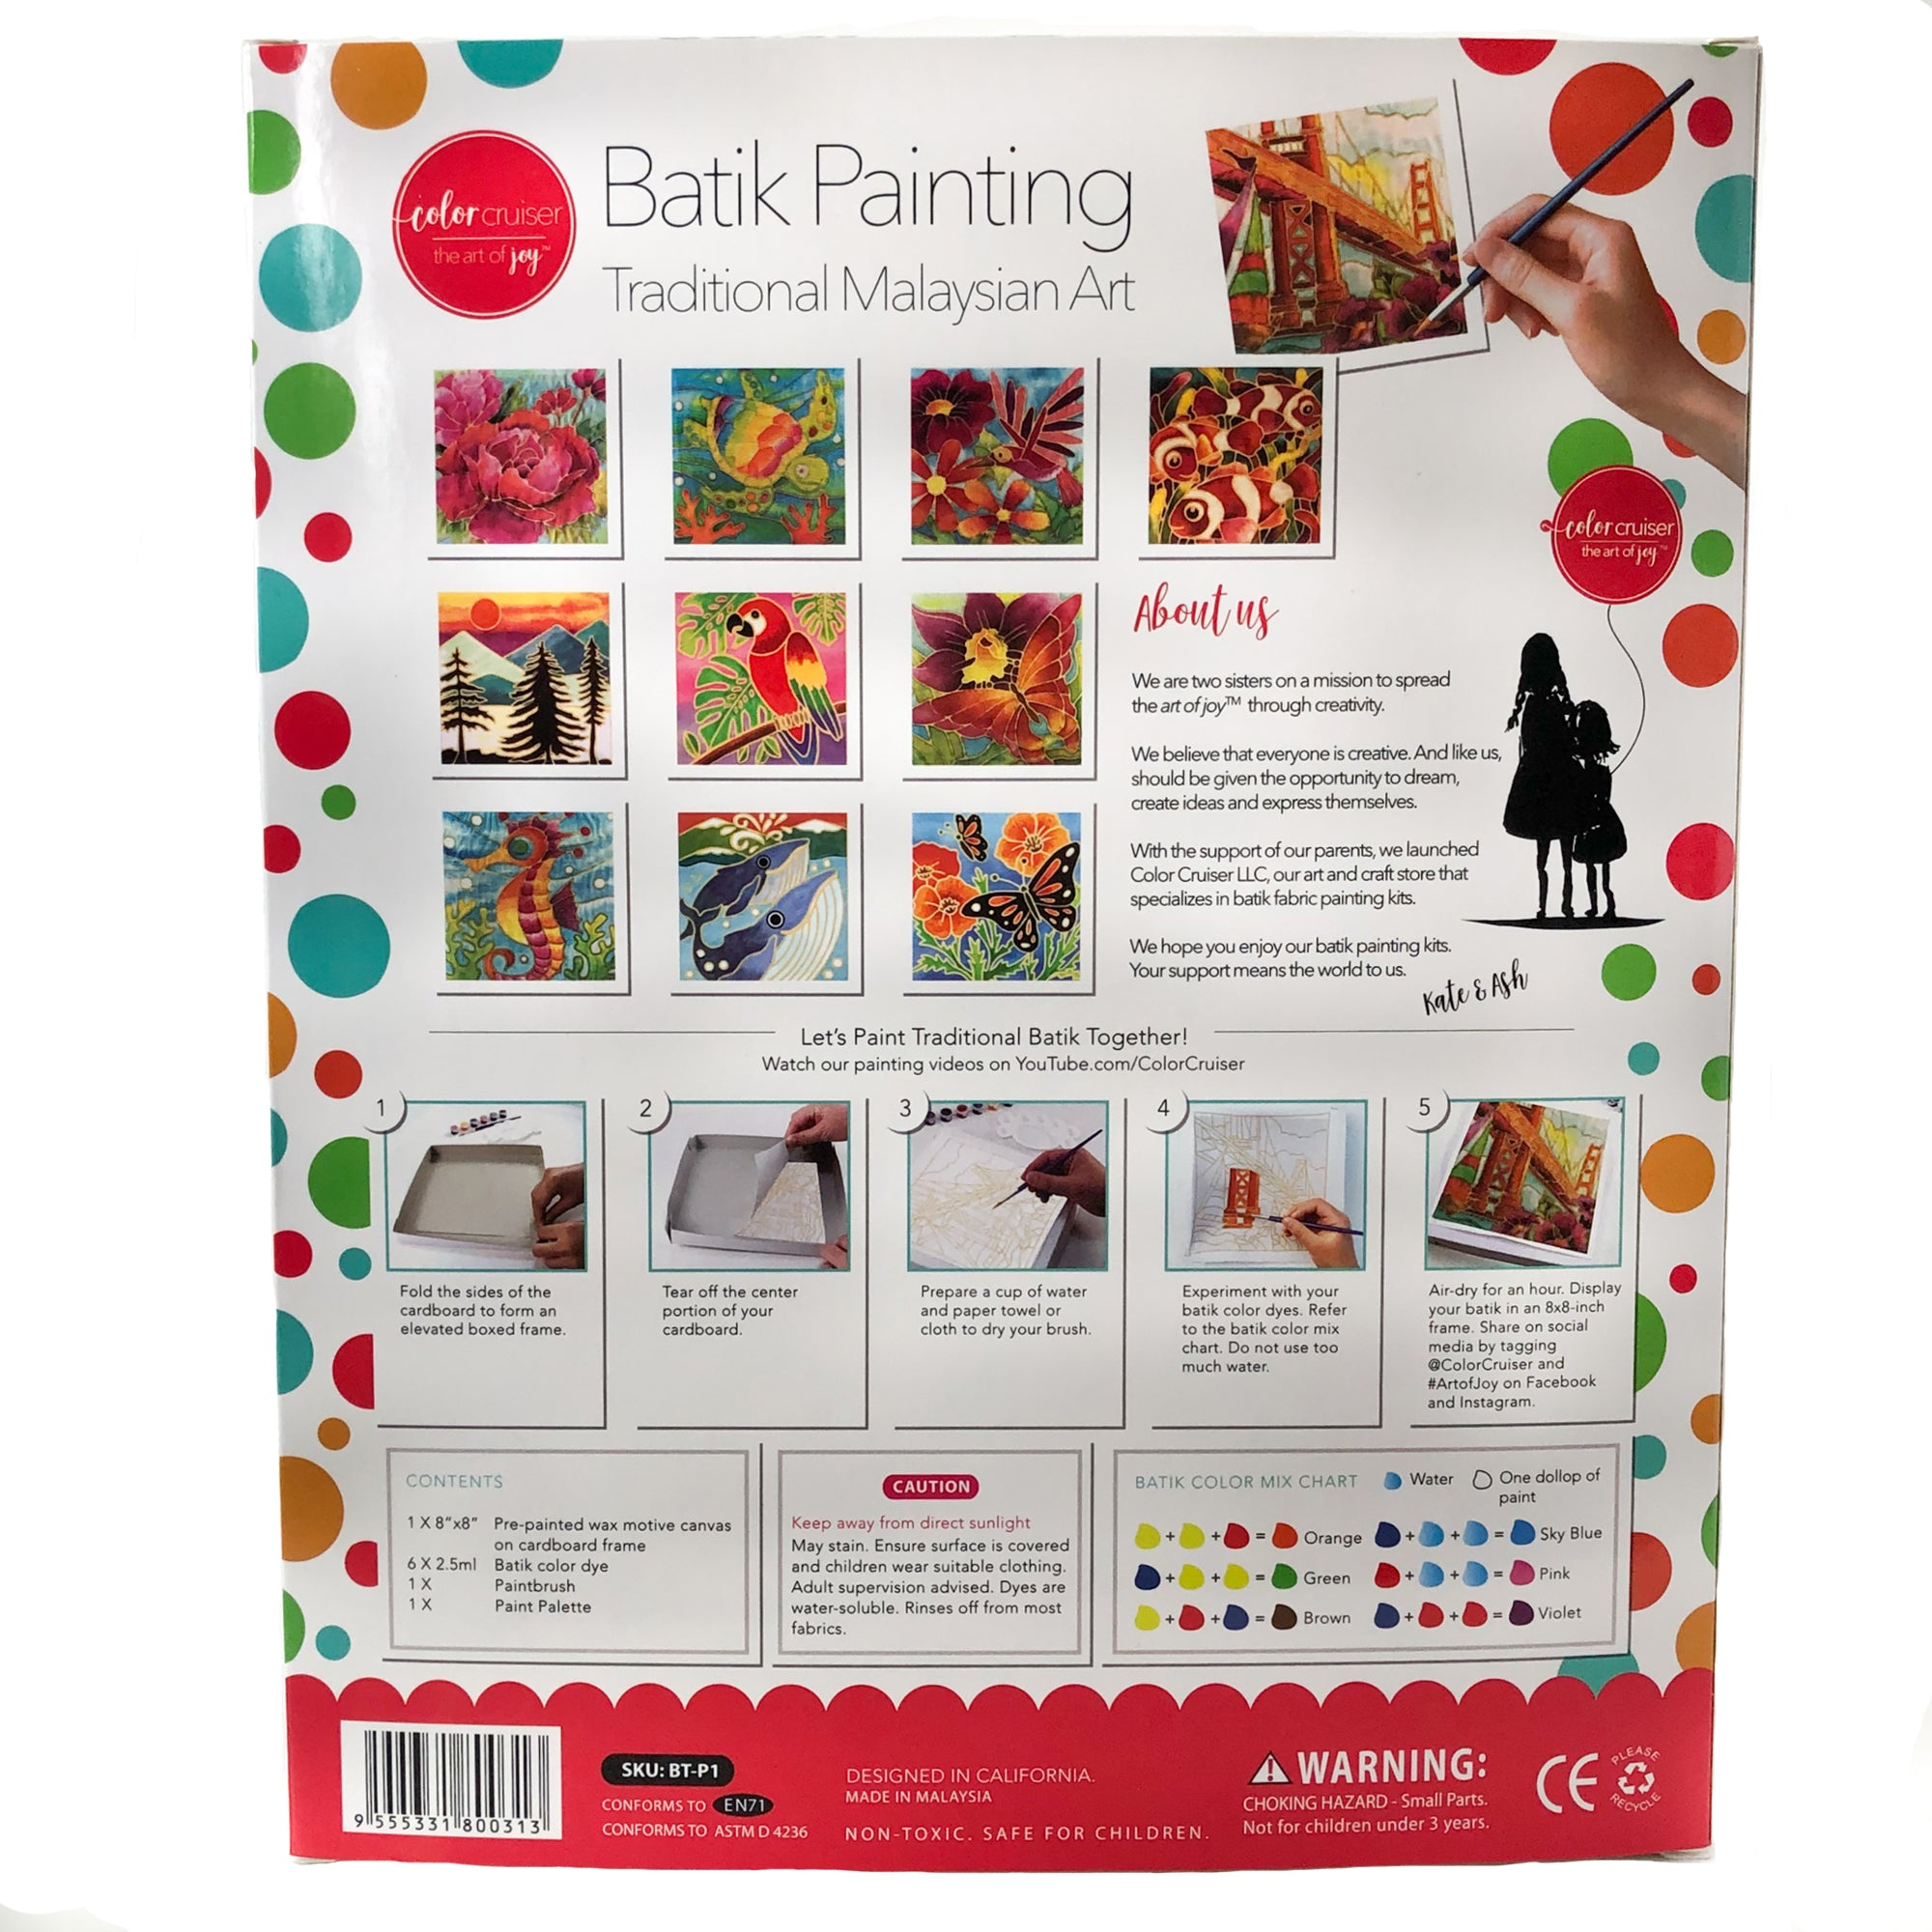 DIY Batik San Francisco Fabric Painting Kit - 8x8 Inch Wax Design, Paint, Brush and Palette